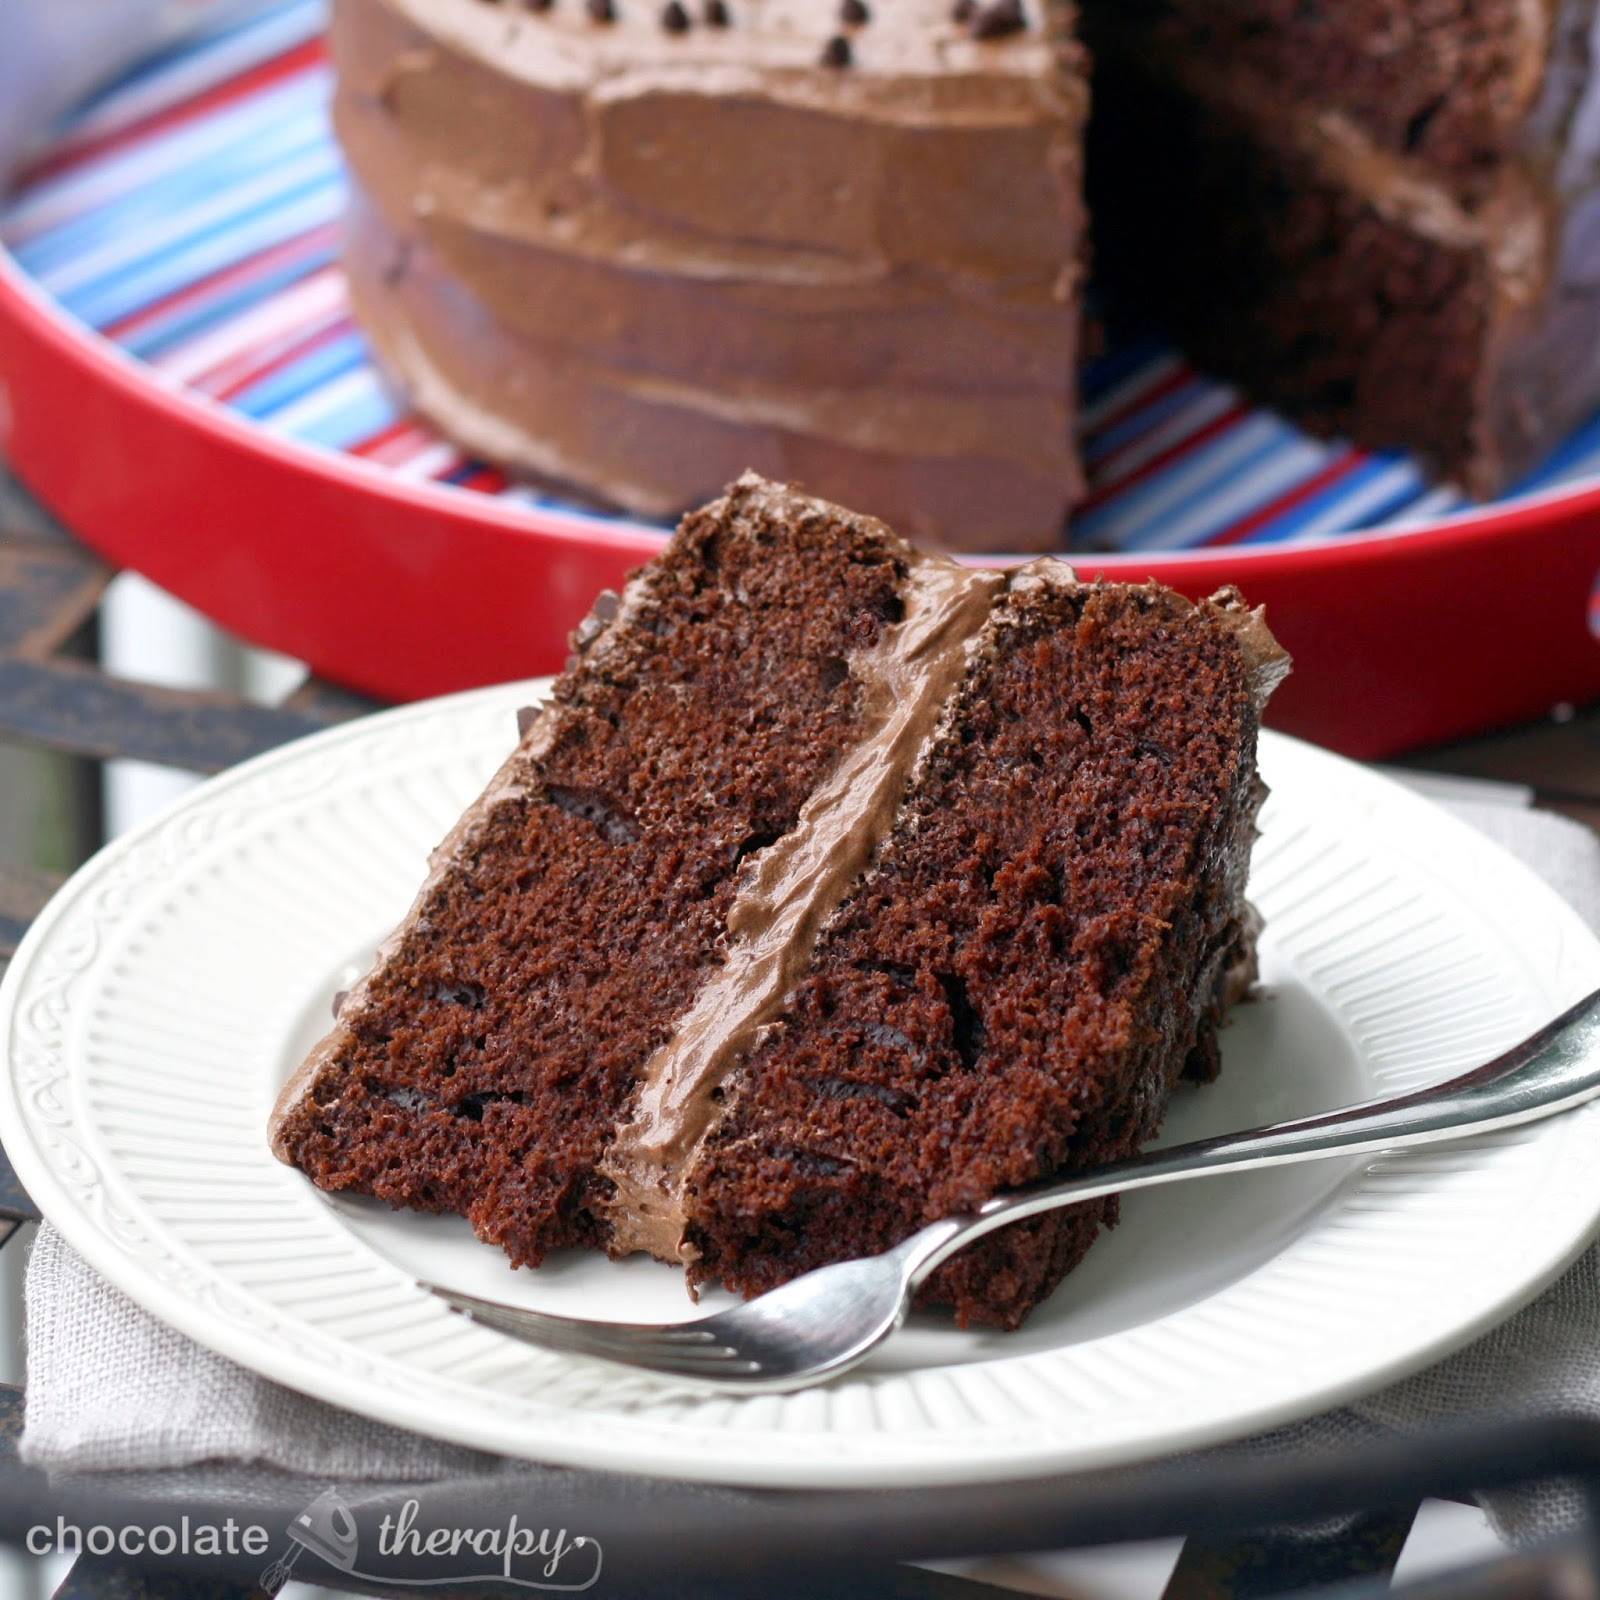 Chocolate Therapy: The Best Chocolate Cake